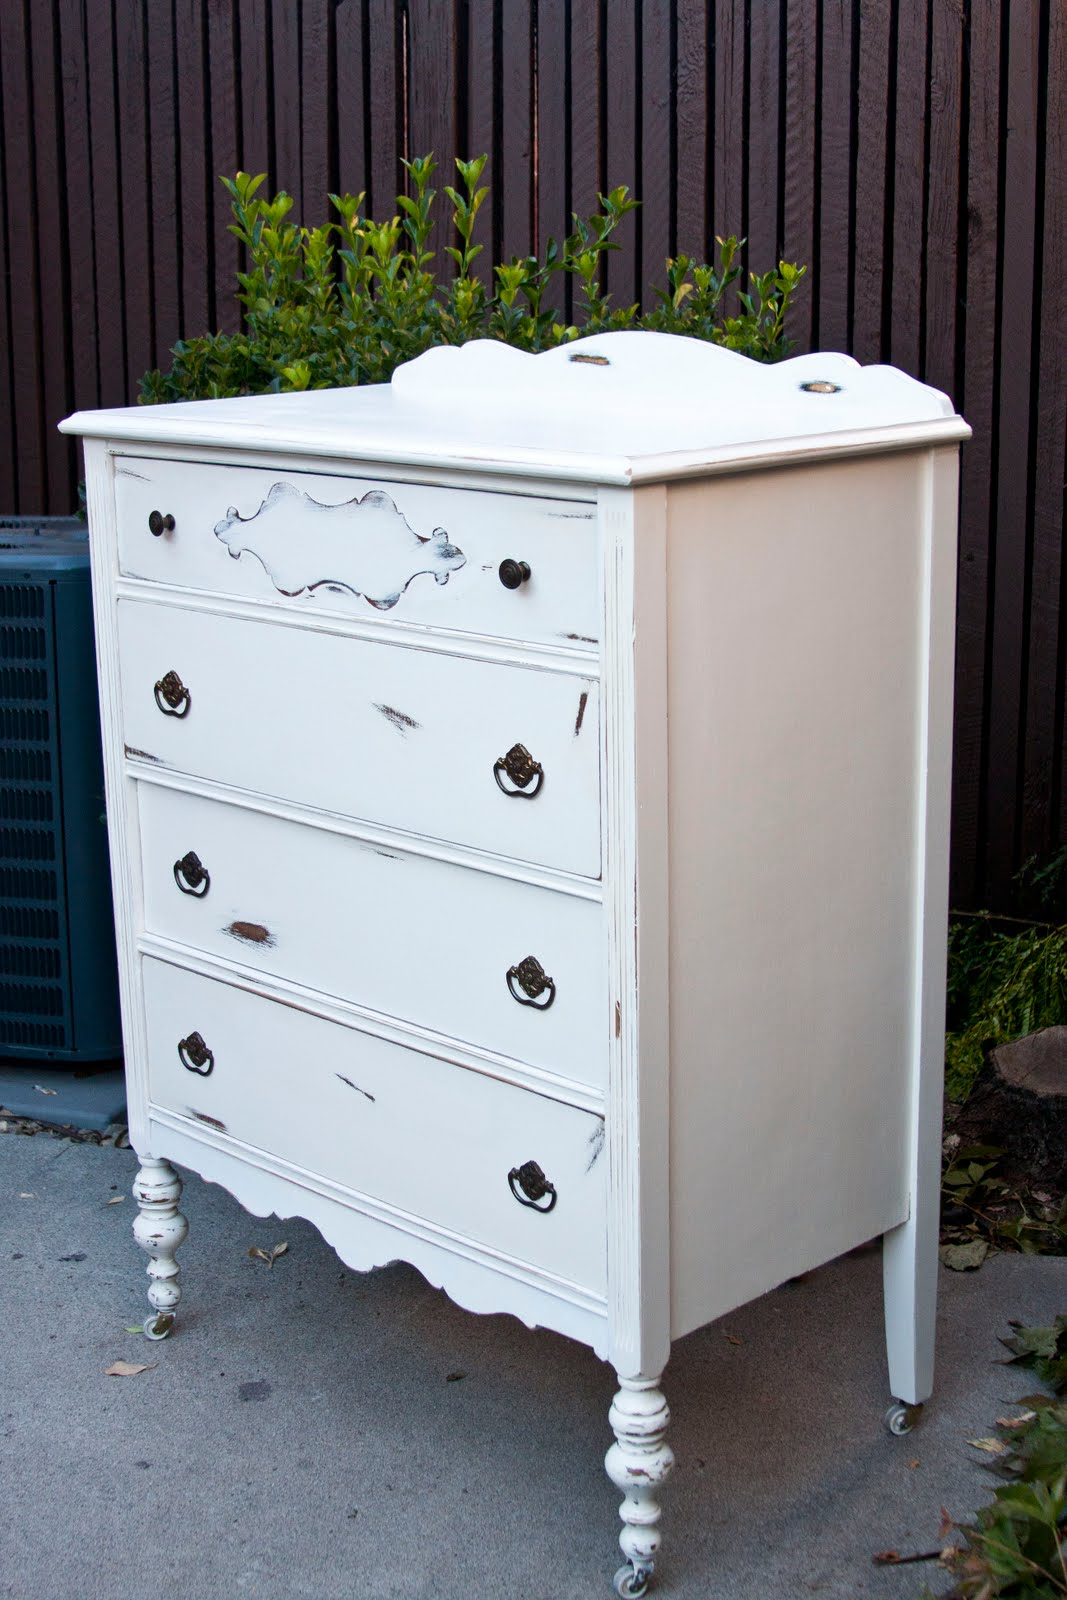 Modernly Shabby Chic Furniture Classic OffWhite Dresser